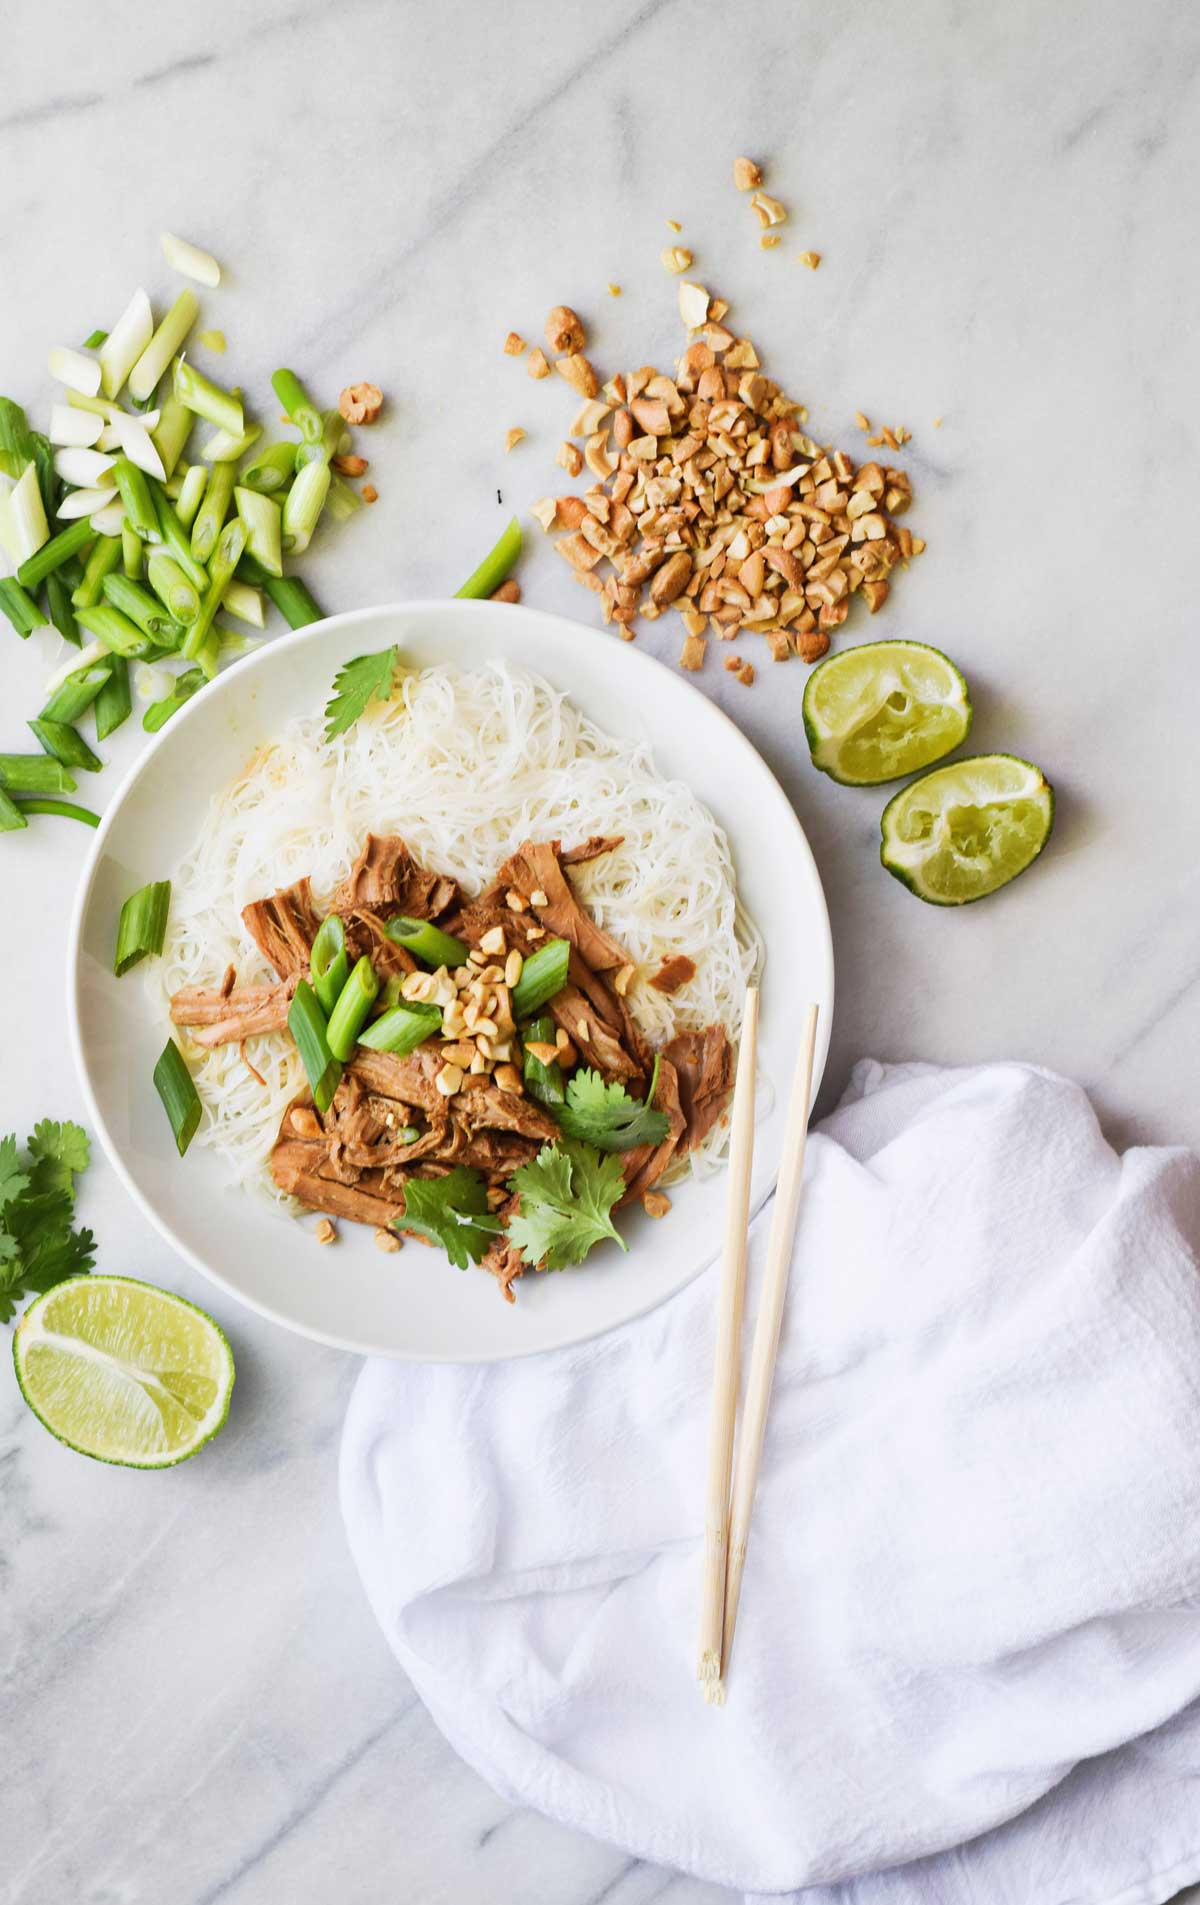 Slow Cooker Garlic Pork Stir Fry